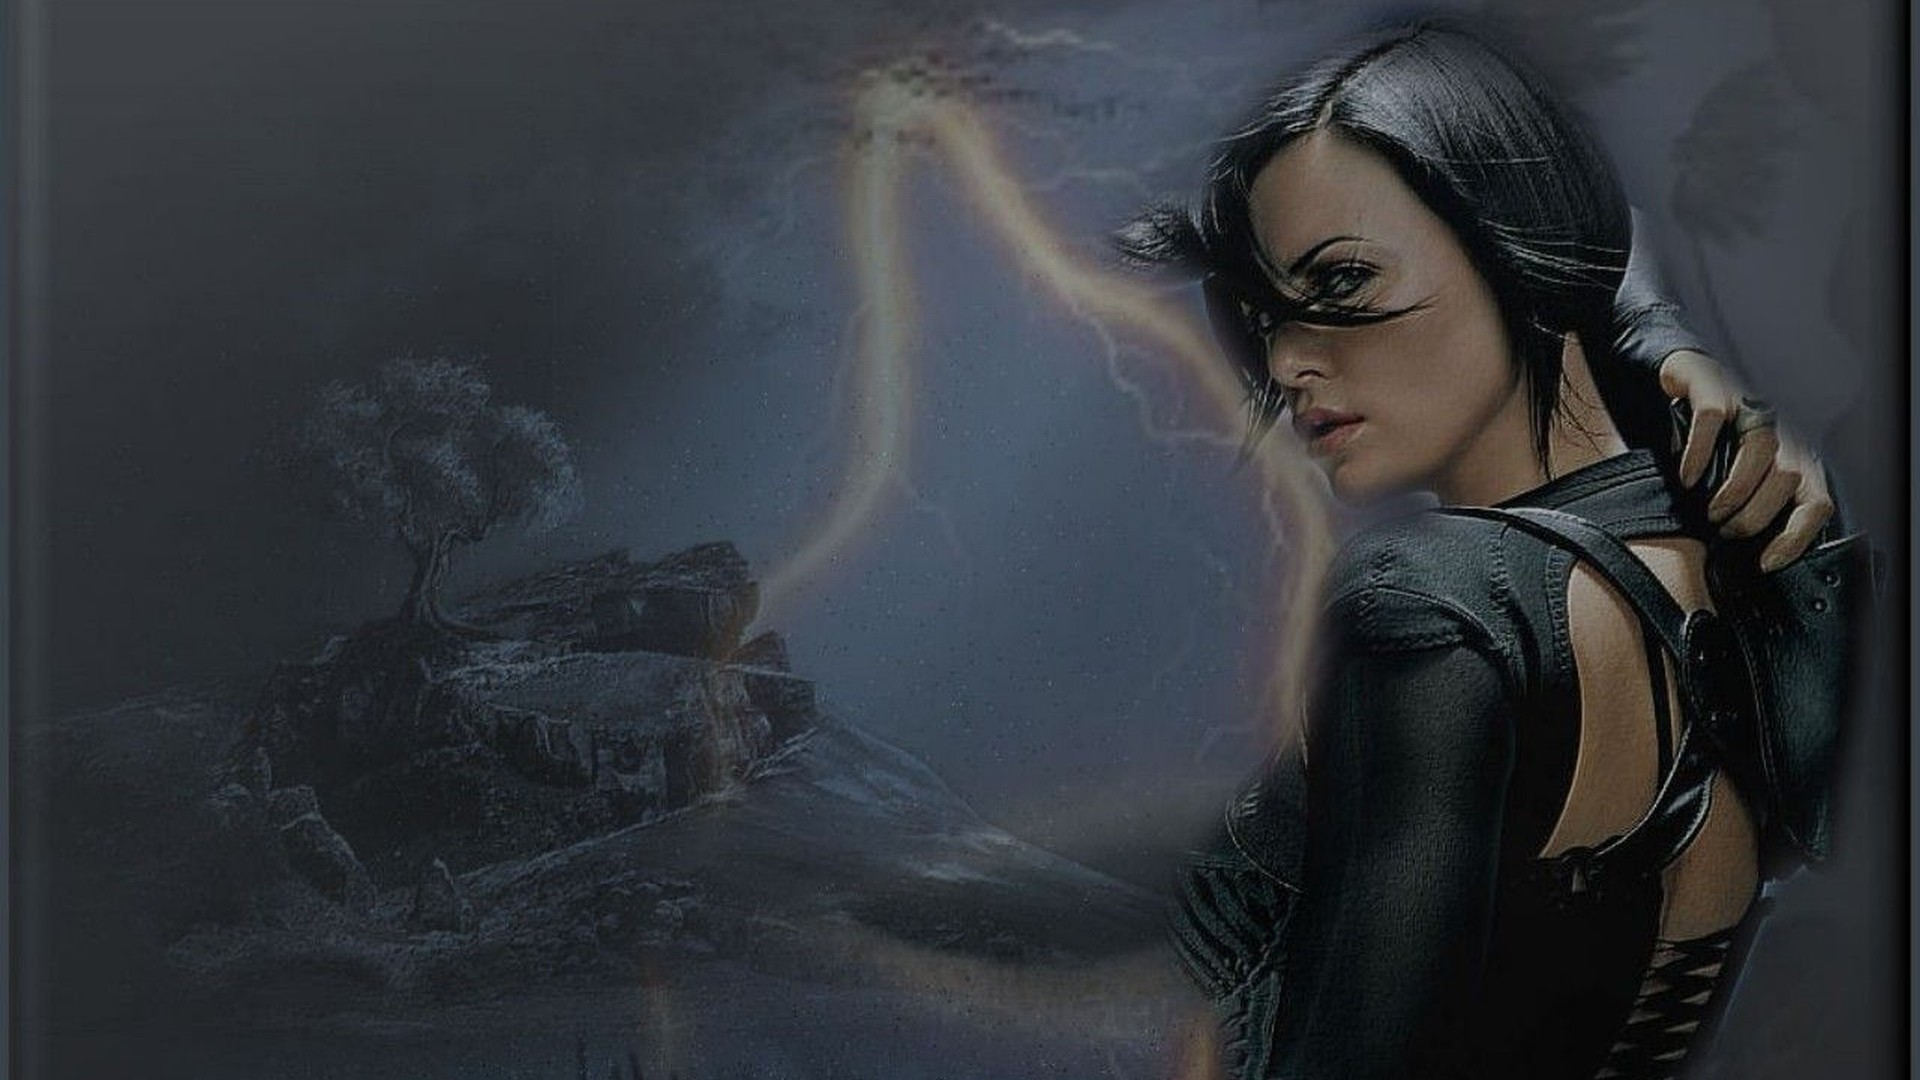 Res: 1920x1080, Movie - Aeon Flux Charlize Theron Wallpaper